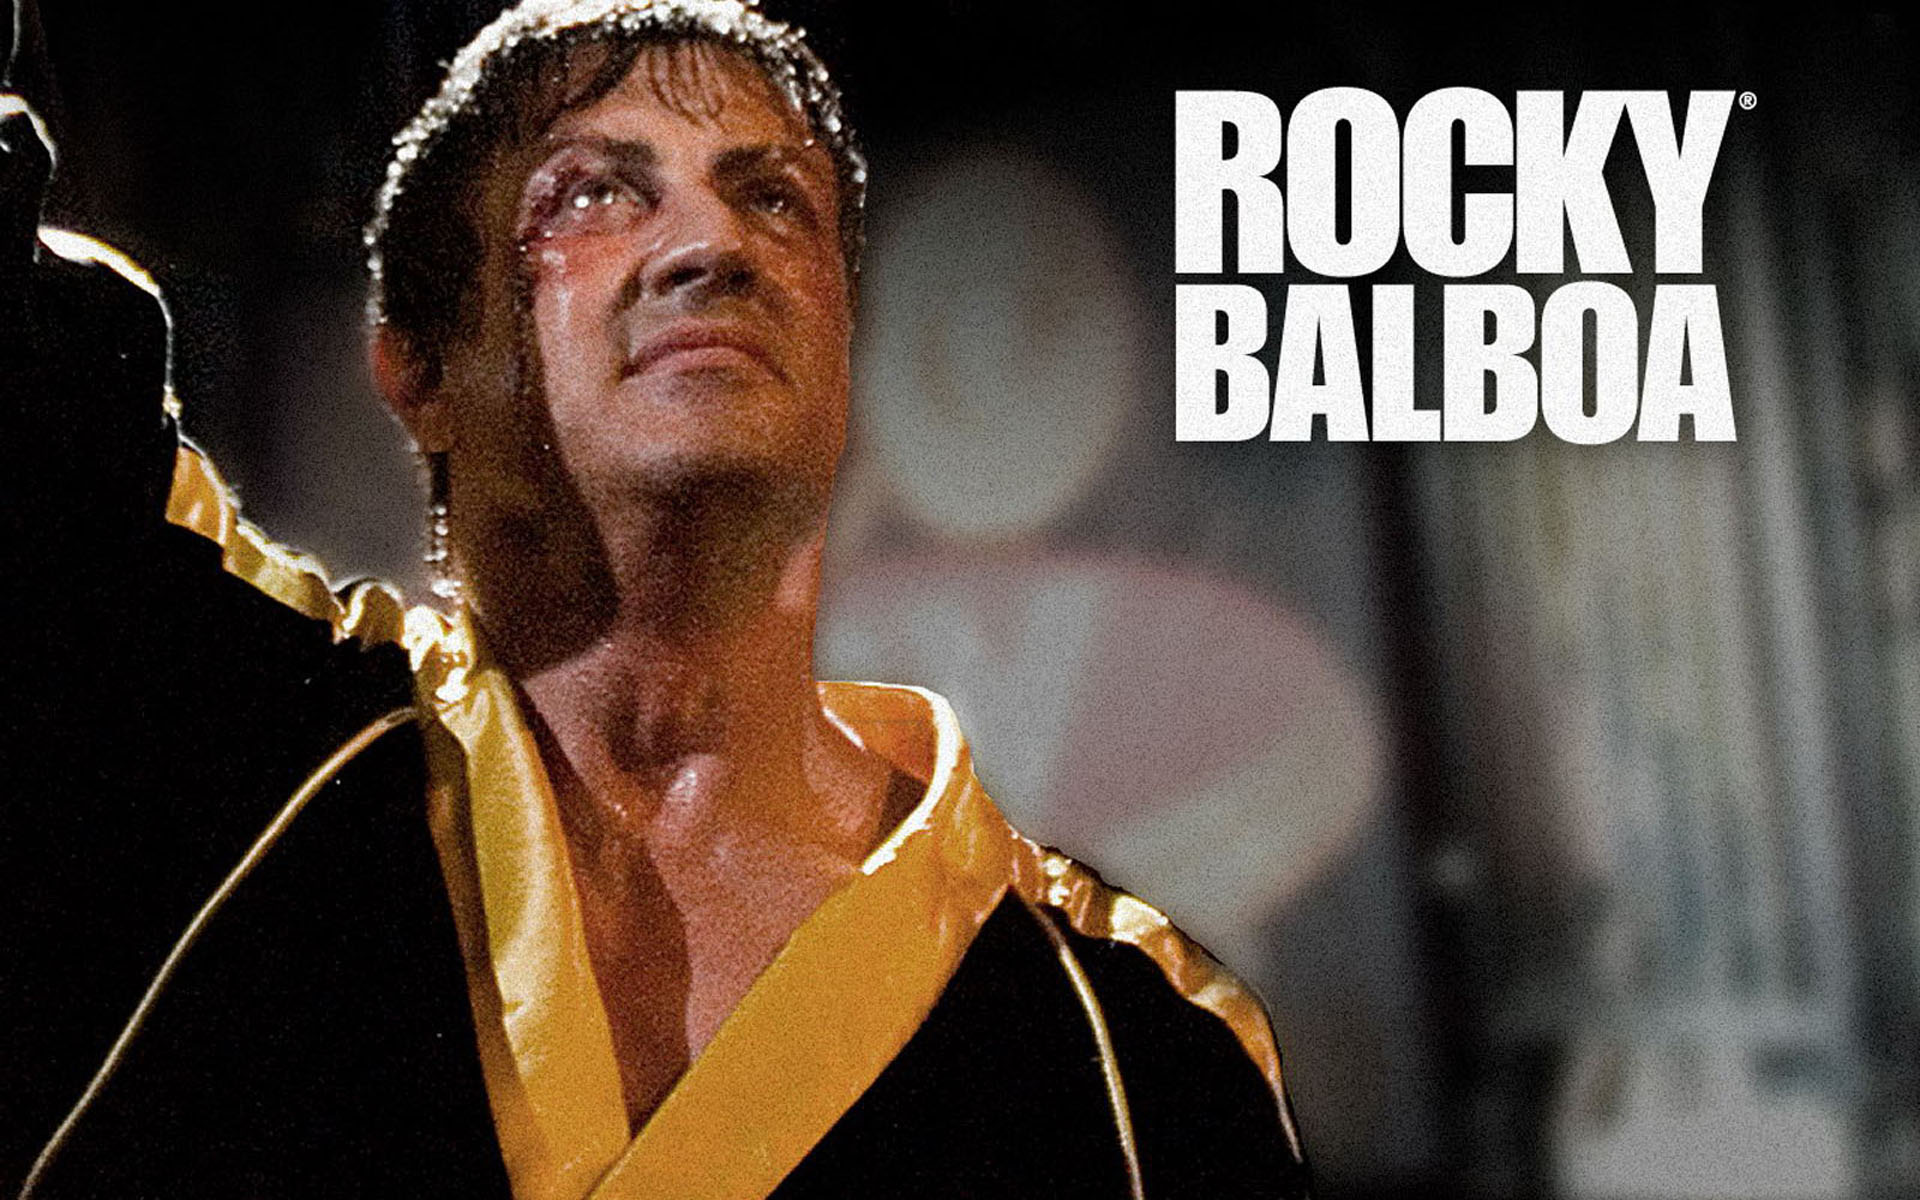 Rocky Balboa Wallpaper 1920x1200 Wallpapers 1920x1200 1920x1200